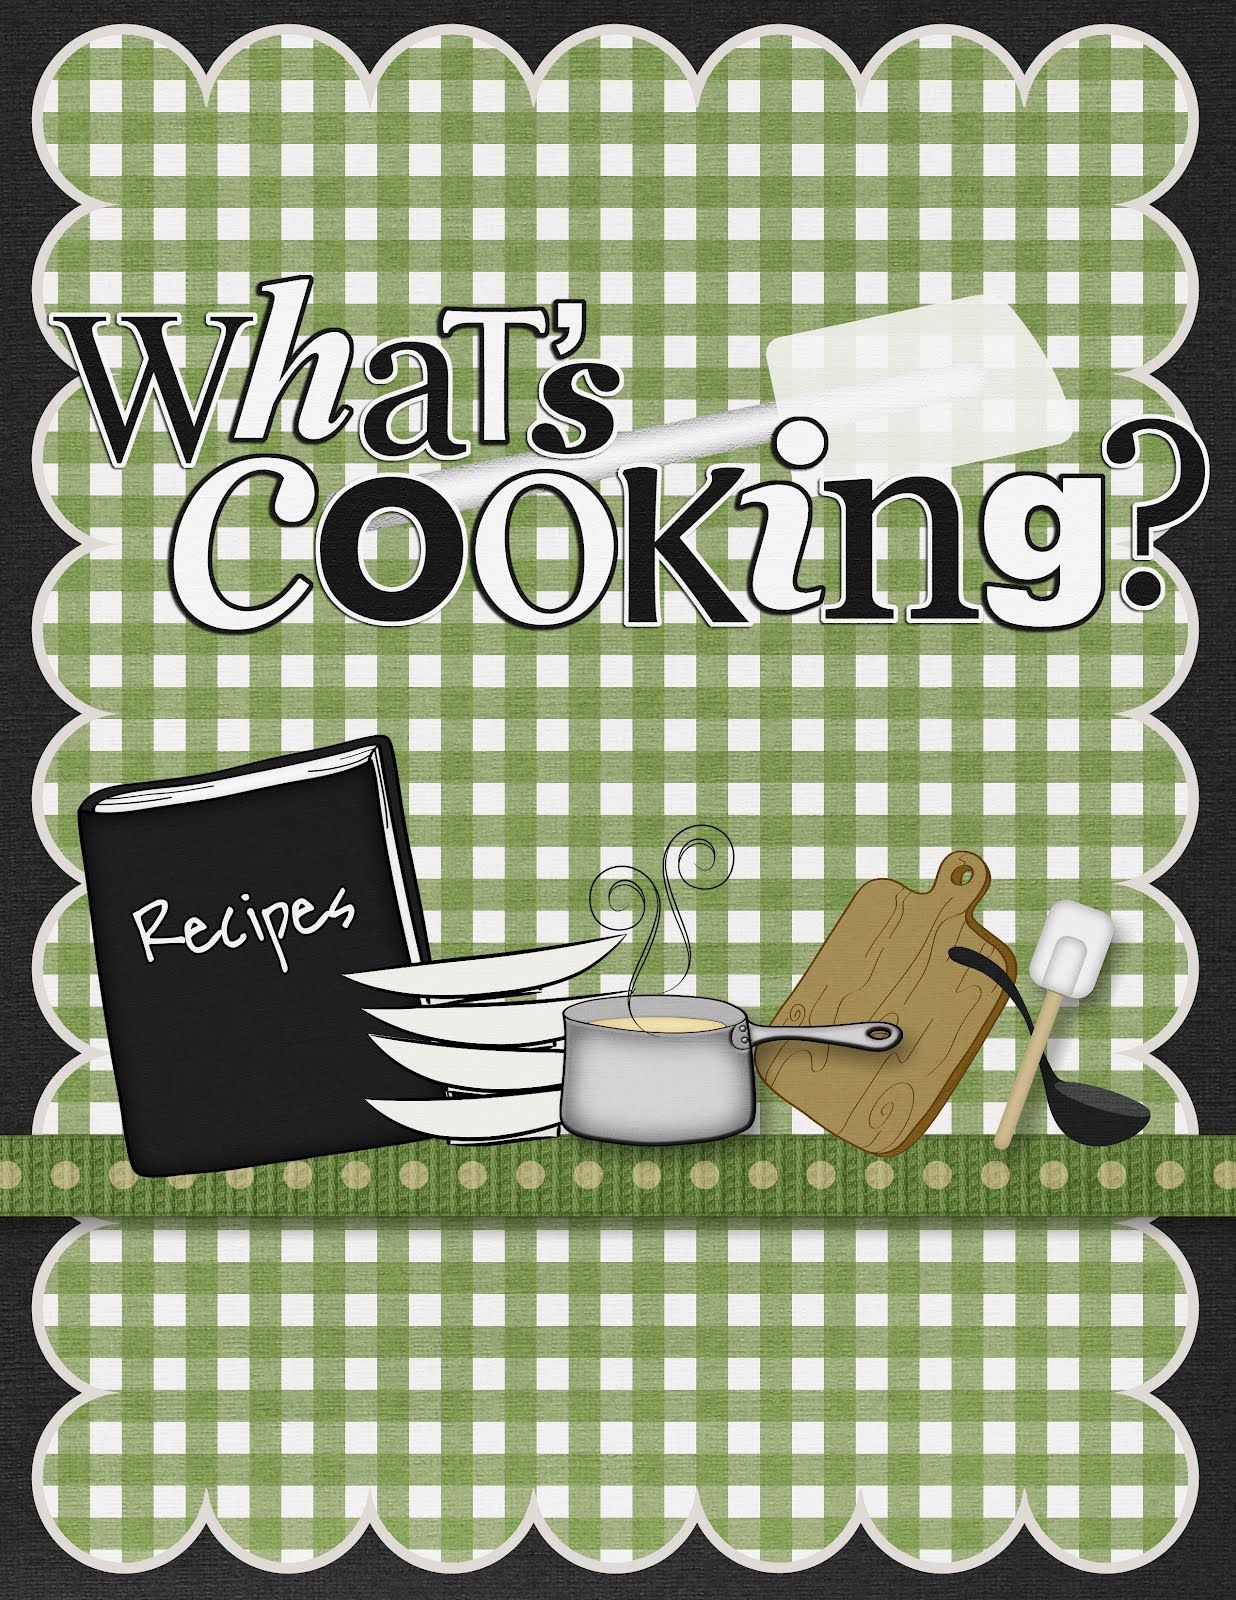 Cookbook Cover Template Maker : Cook book scrapbook cover pin if you like it books